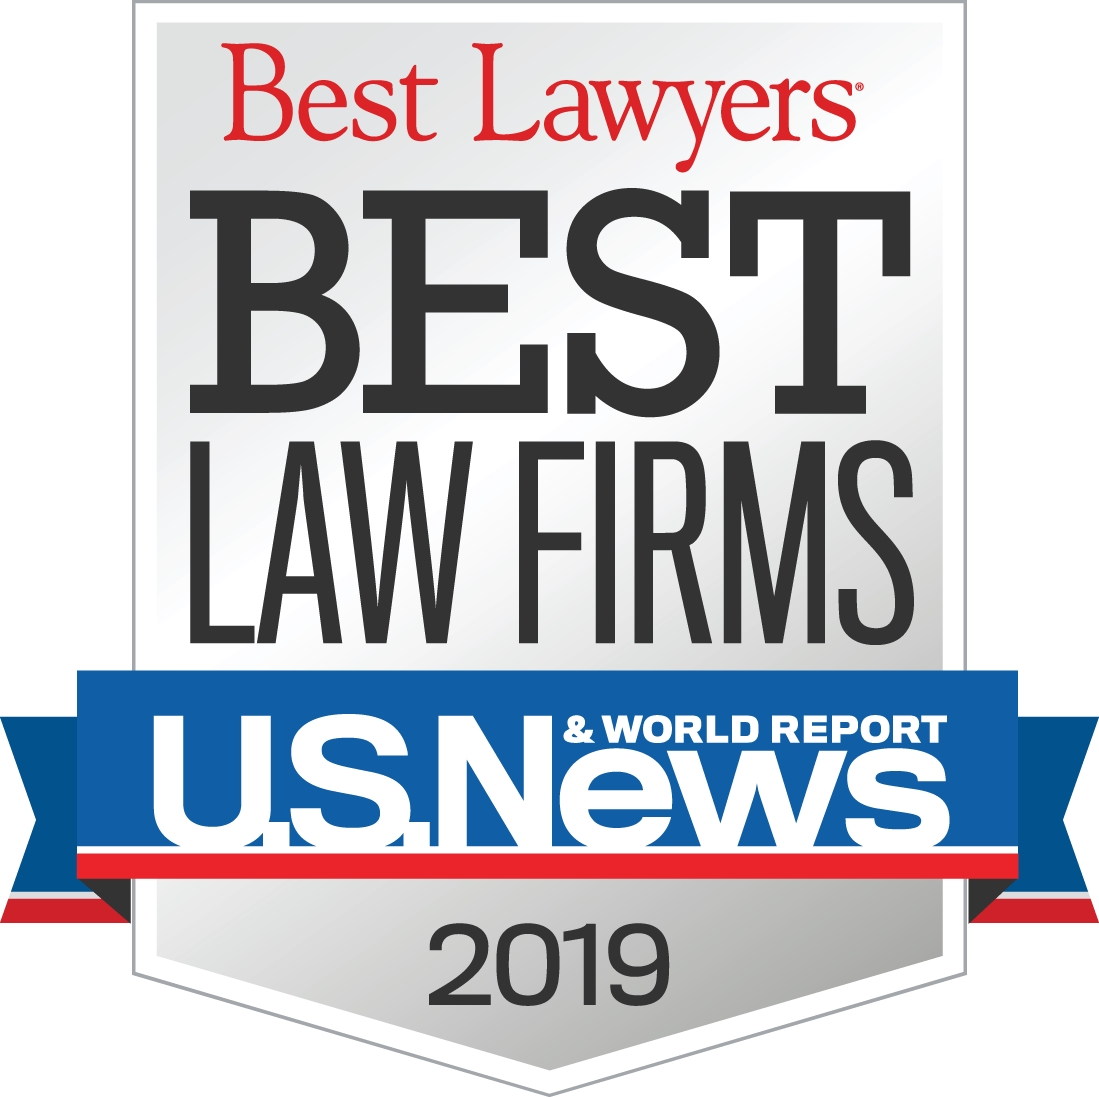 best-law-firms-2019-purchased-badge.jpg